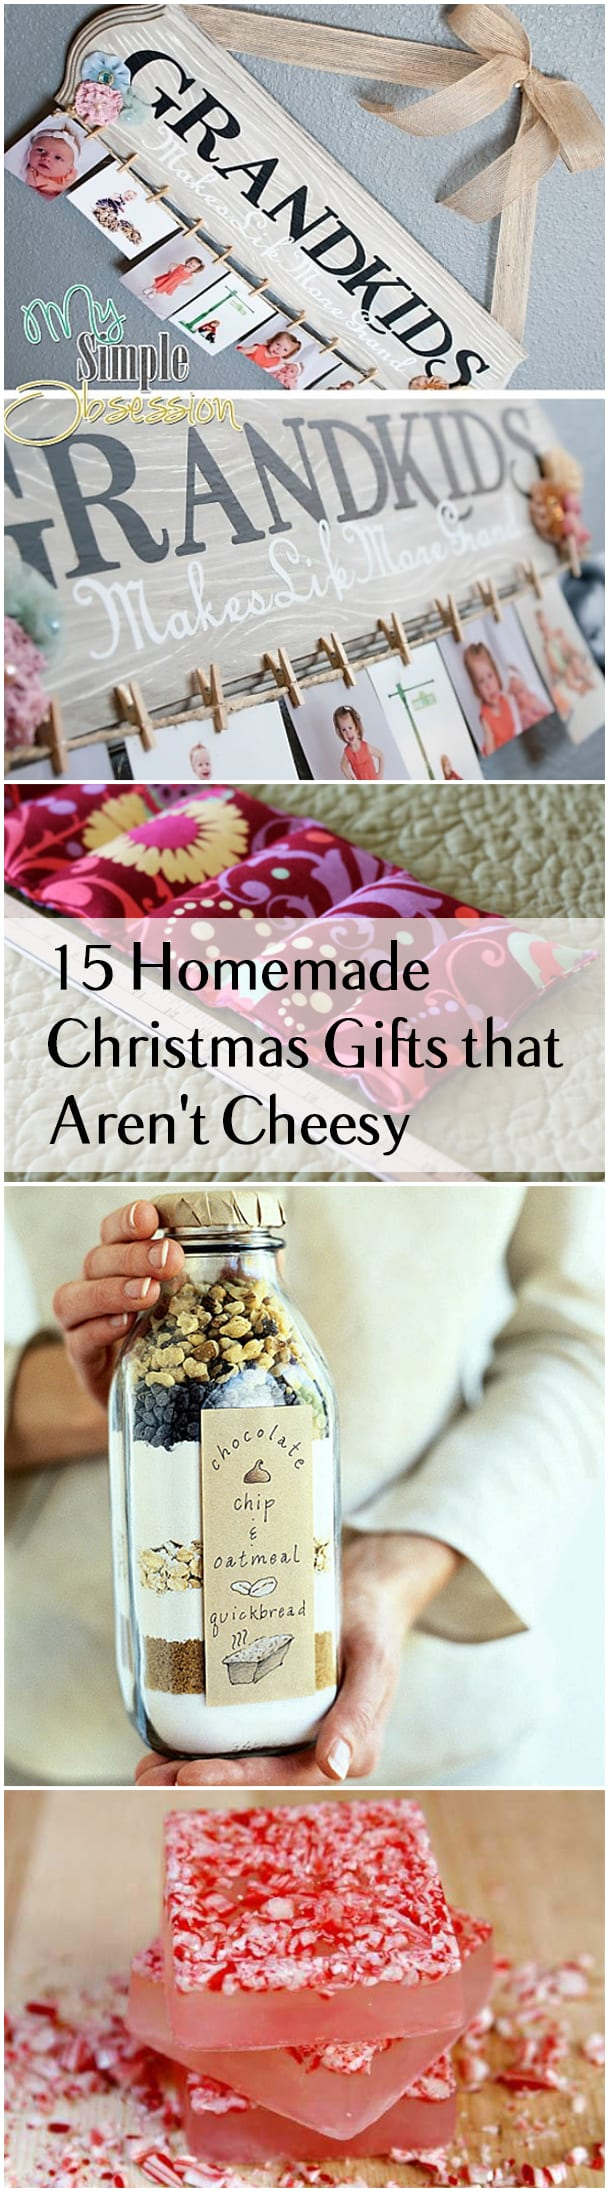 15 homemade christmas gifts that aren 39 t cheesy Homemade christmas gifts